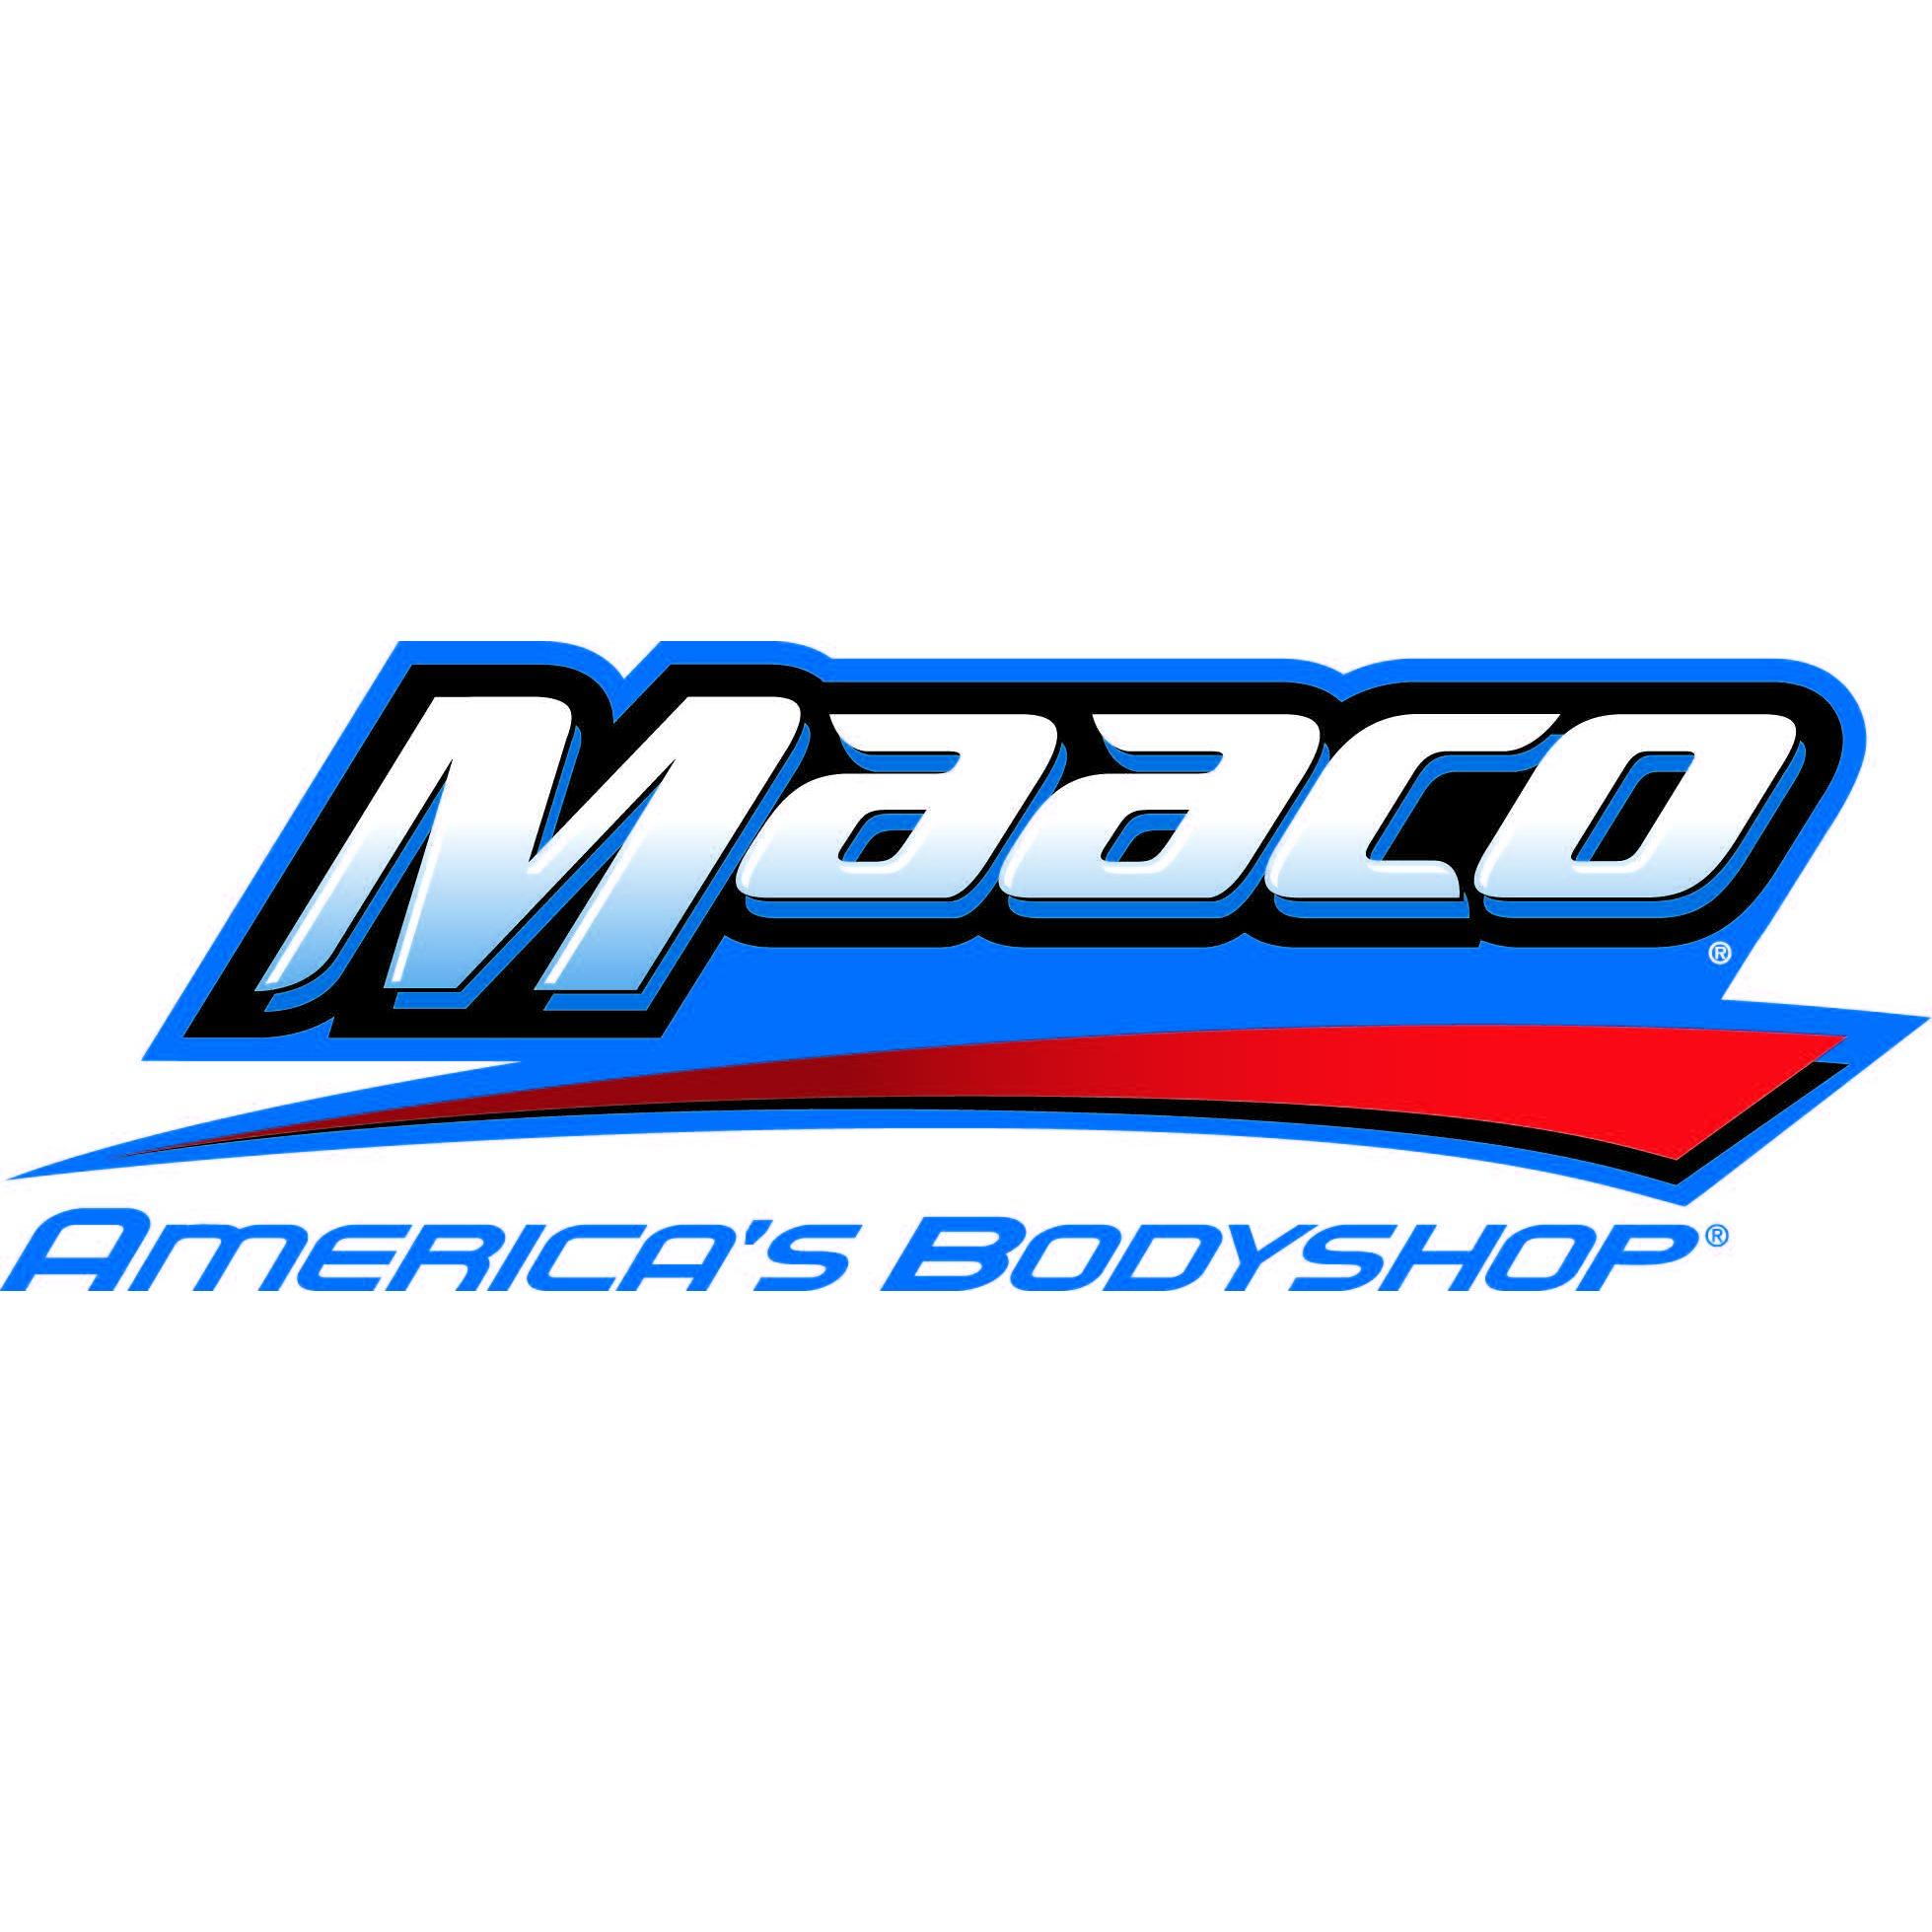 Maaco Collision Repair & Auto Painting - Phoenix, AZ - Auto Body Repair & Painting